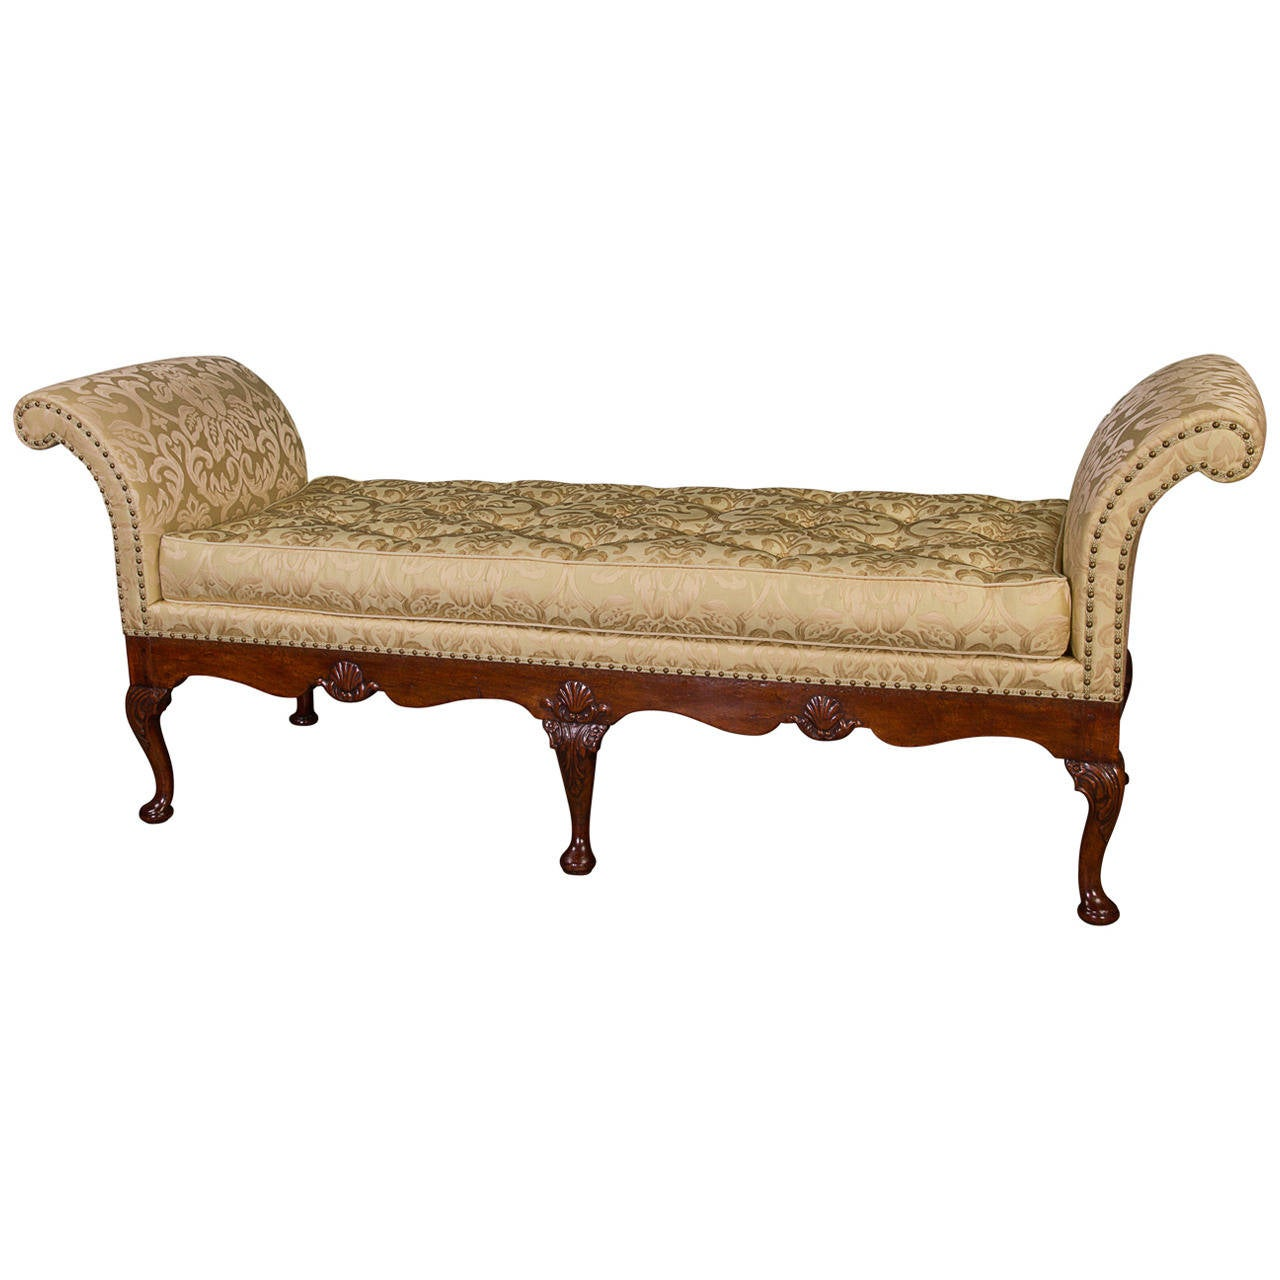 Rare George II Walnut and Shell Carved Daybed